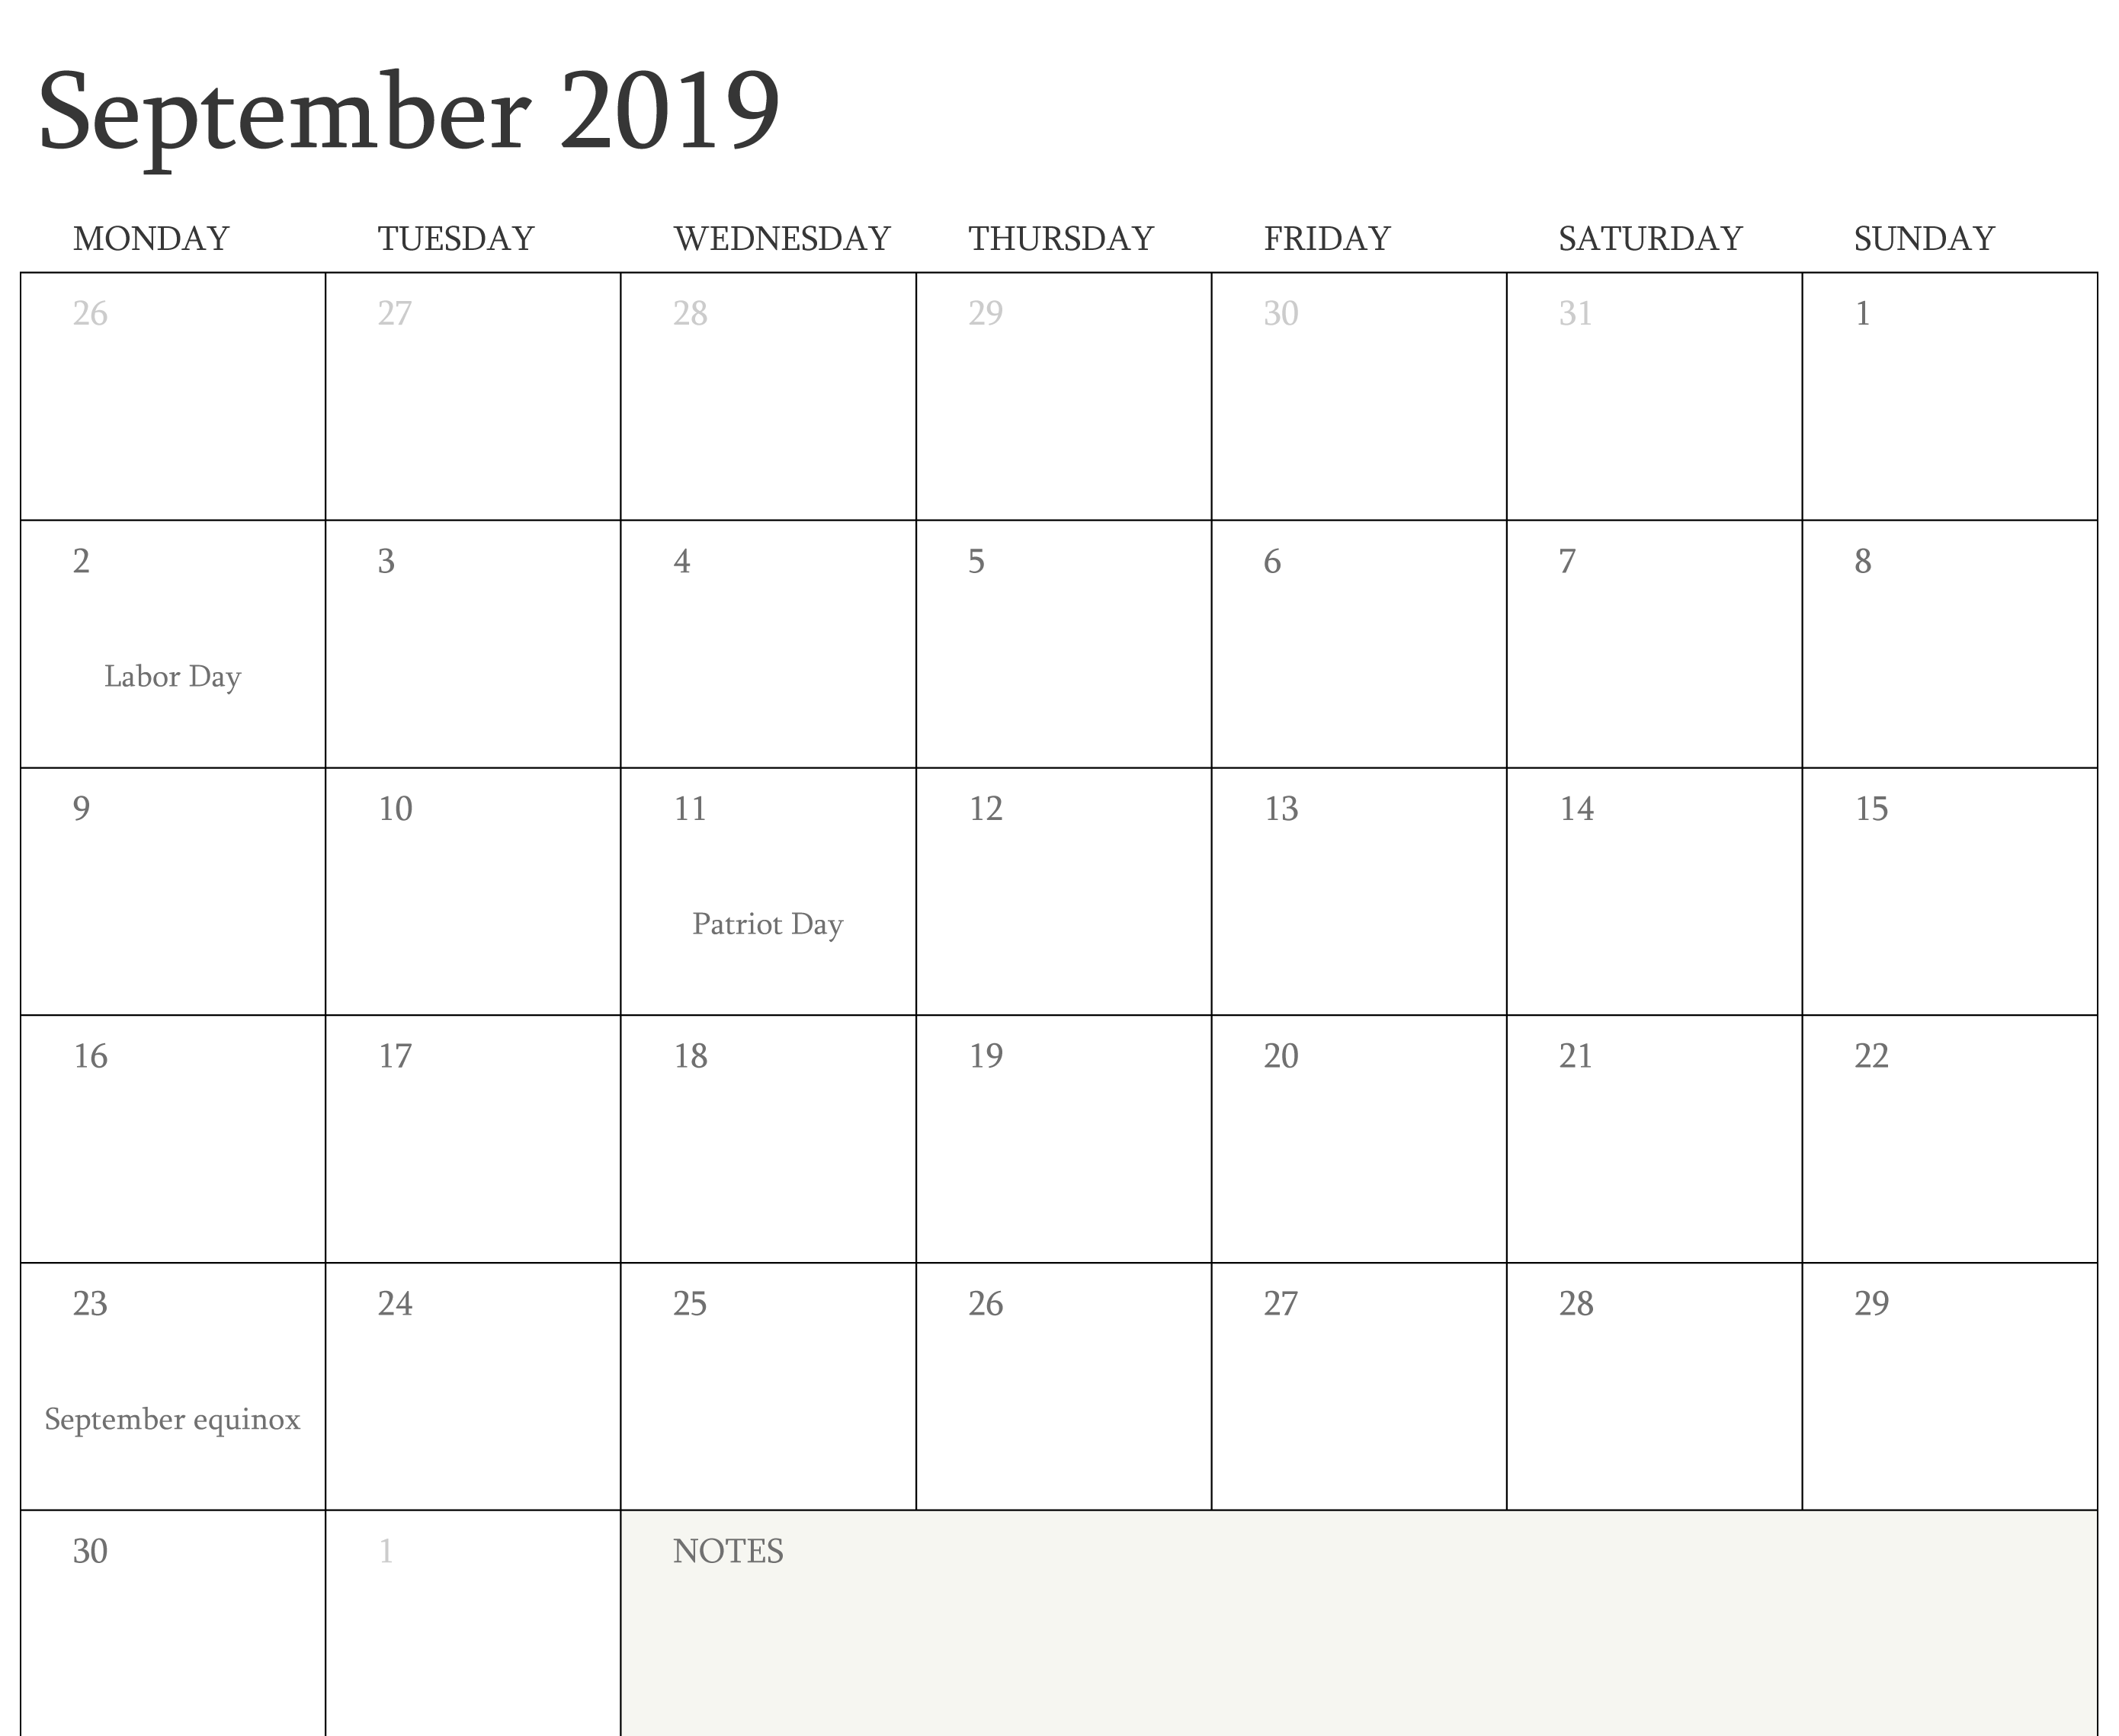 September 2019 Calendar Holidays